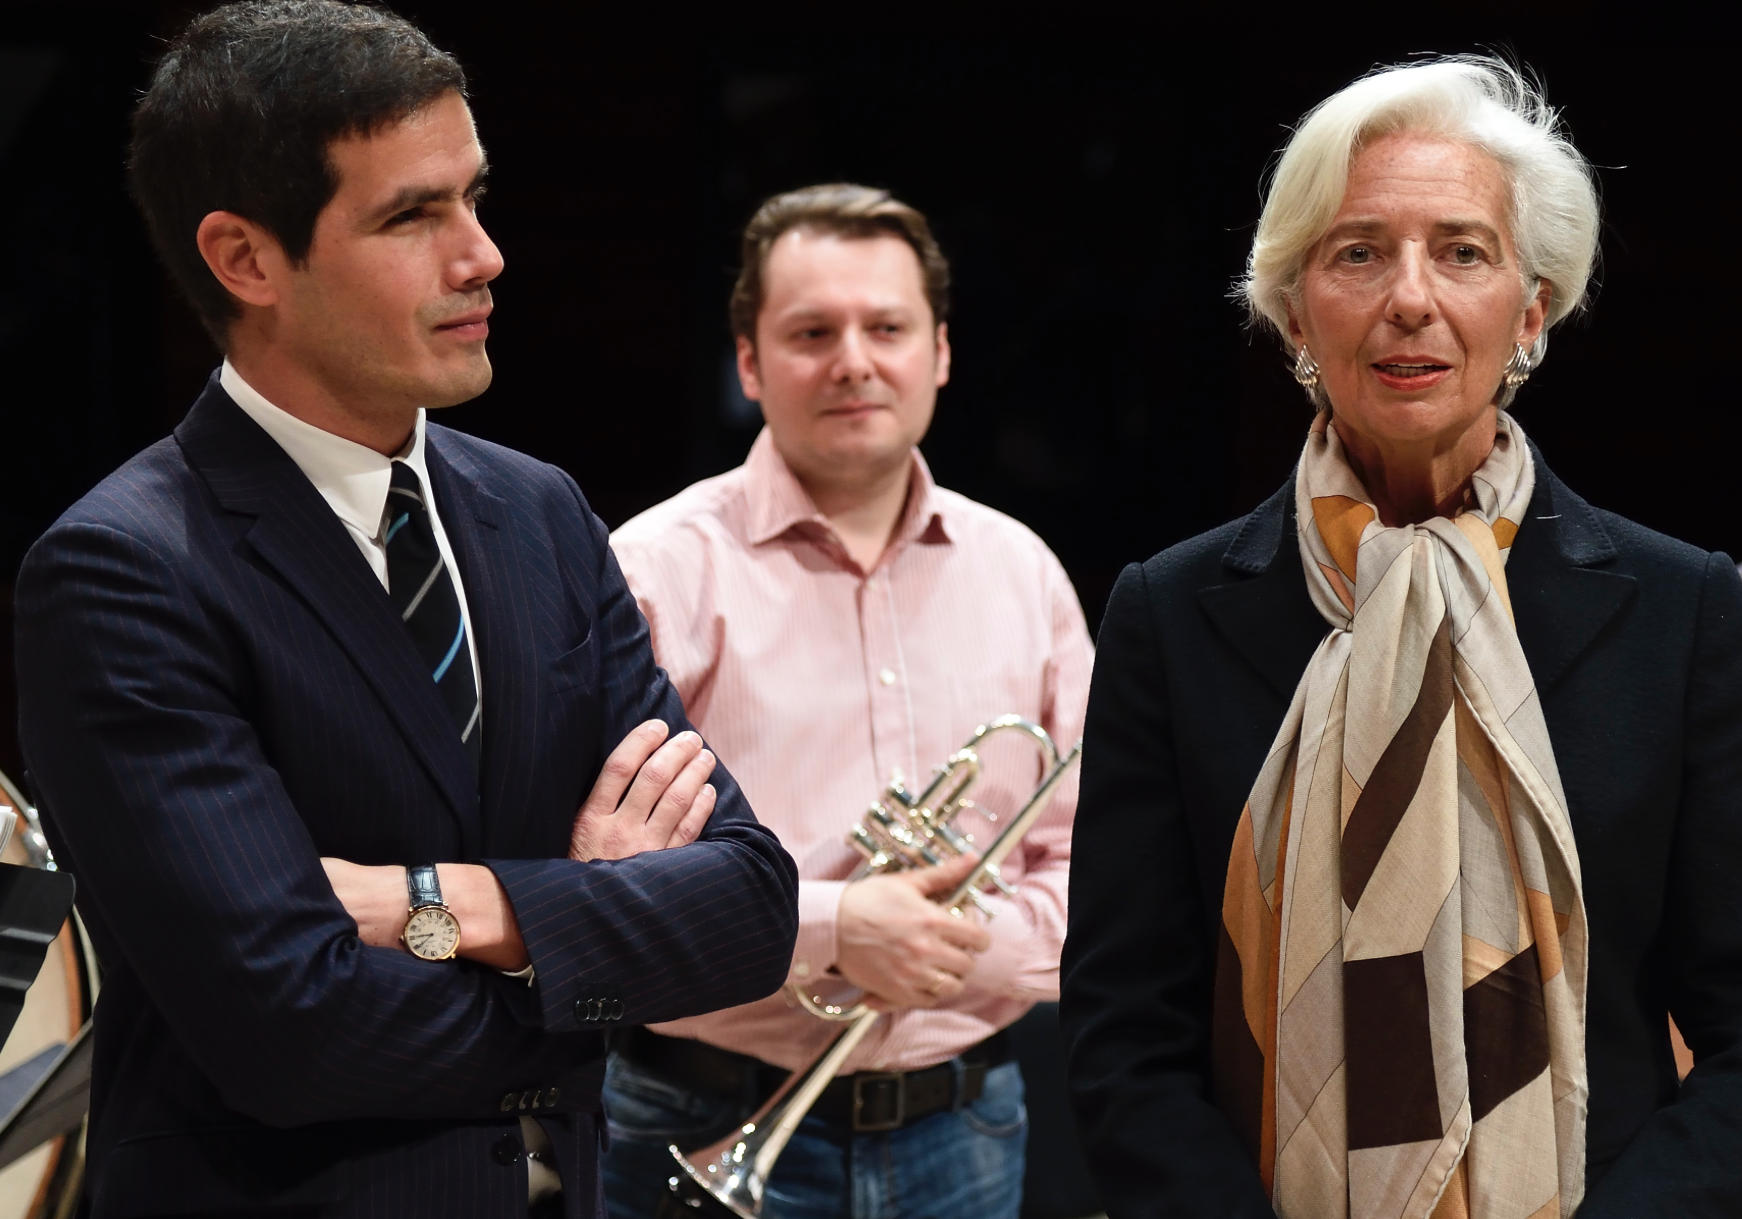 Mathieu Gallet et Christine Lagarde © Christophe Abramowitz / Radio France